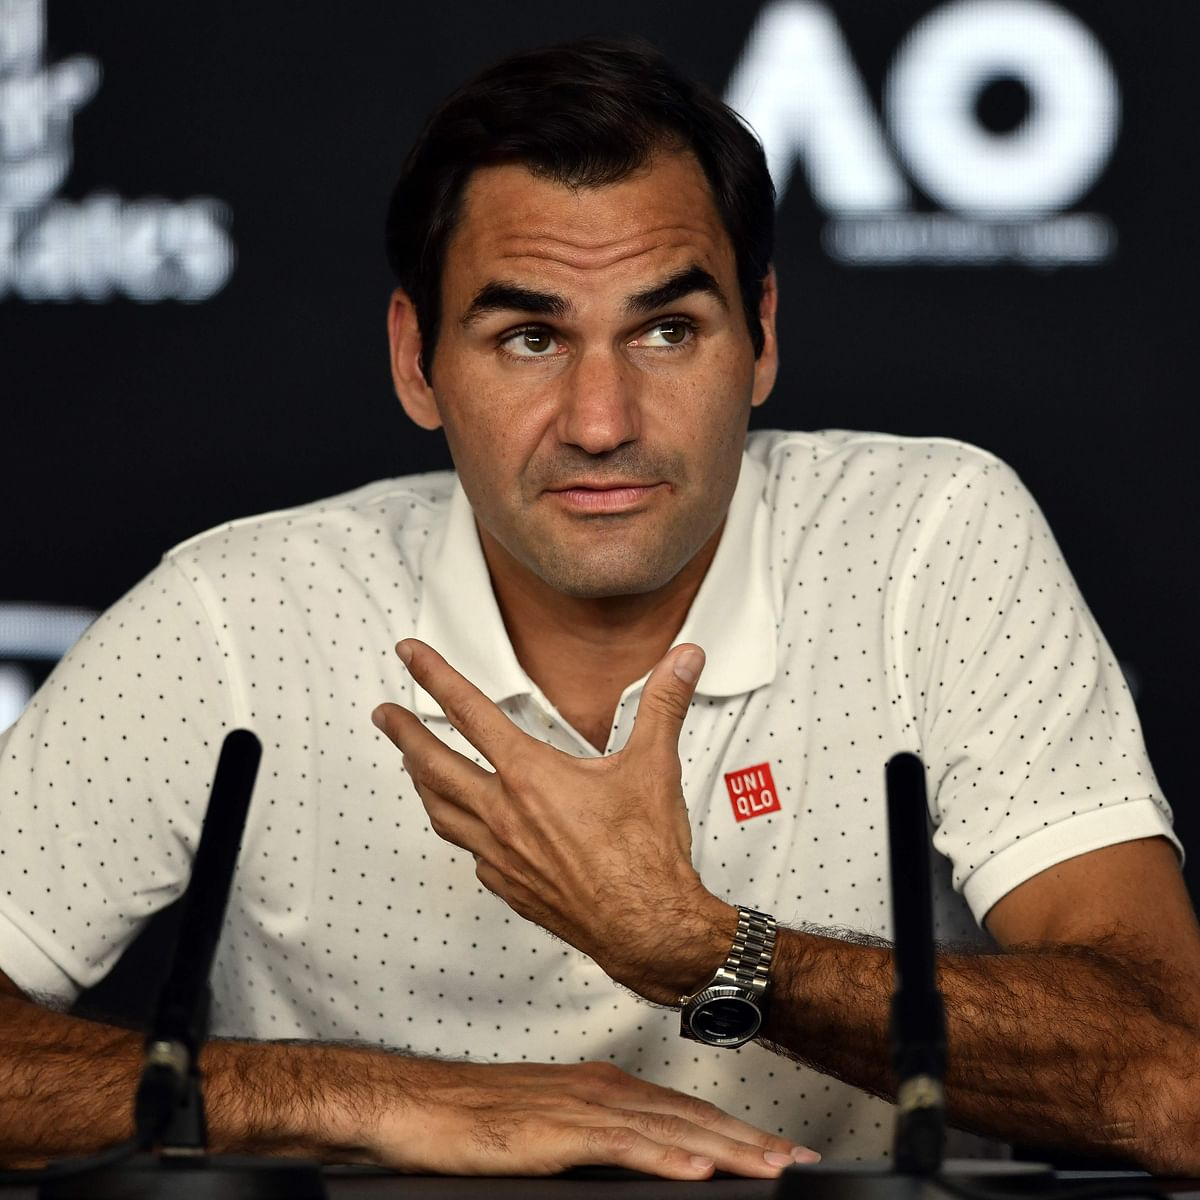 Roger Federer blasts lack of communication